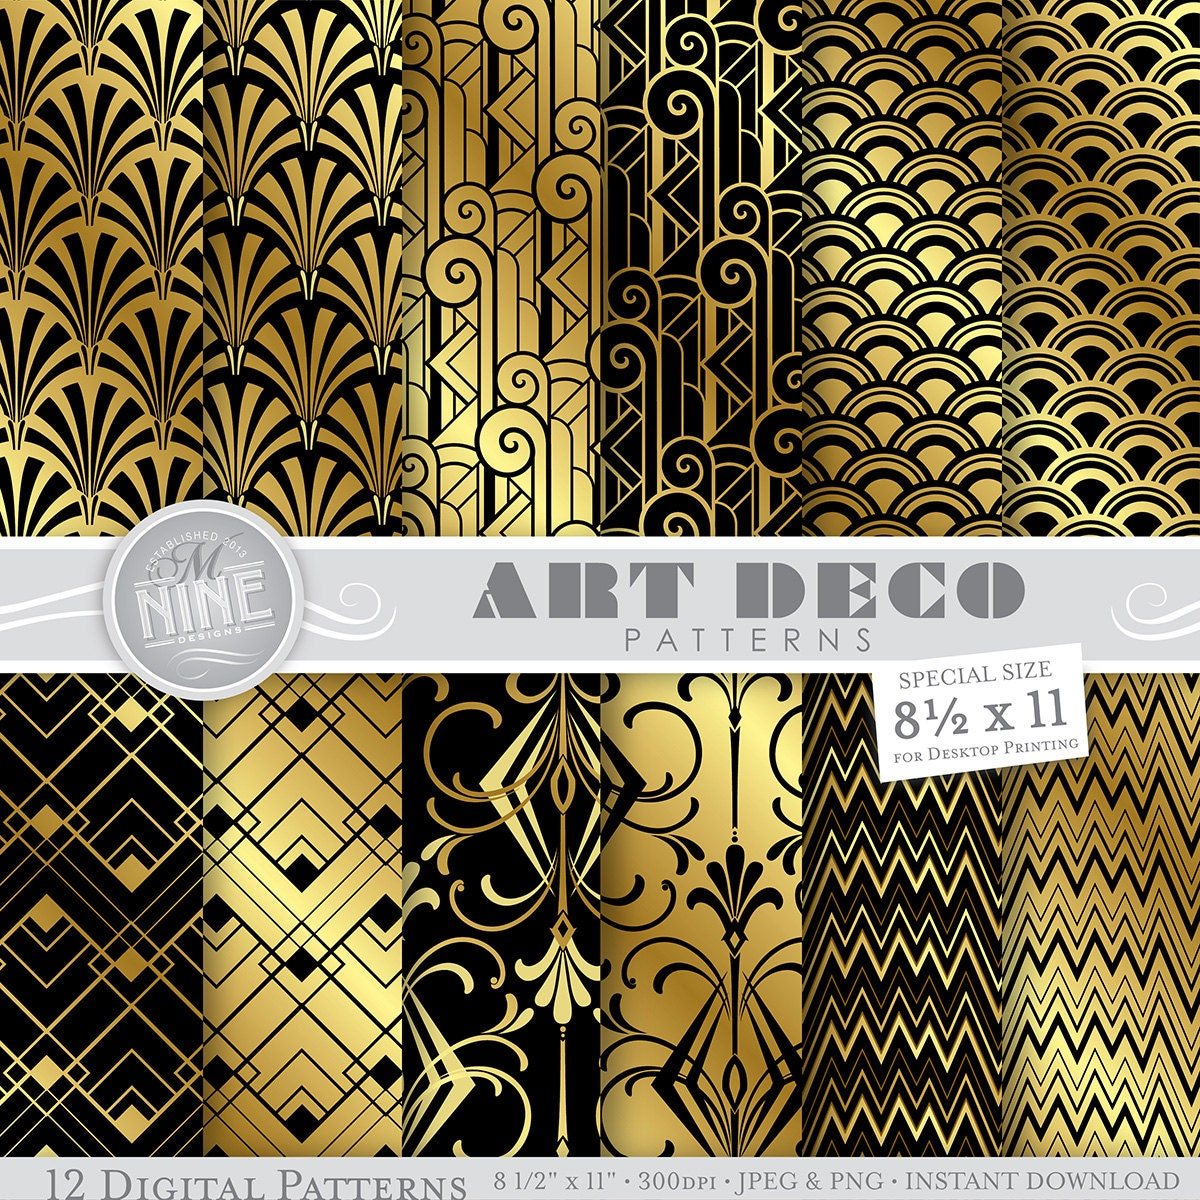 art deco essay Art deco also highlights geometric forms, for example, sunburst, spheres, chevrons, polygons, zigzags, trapezoids, and rectangles motifs there is an organization of the components in symmetrical designs.